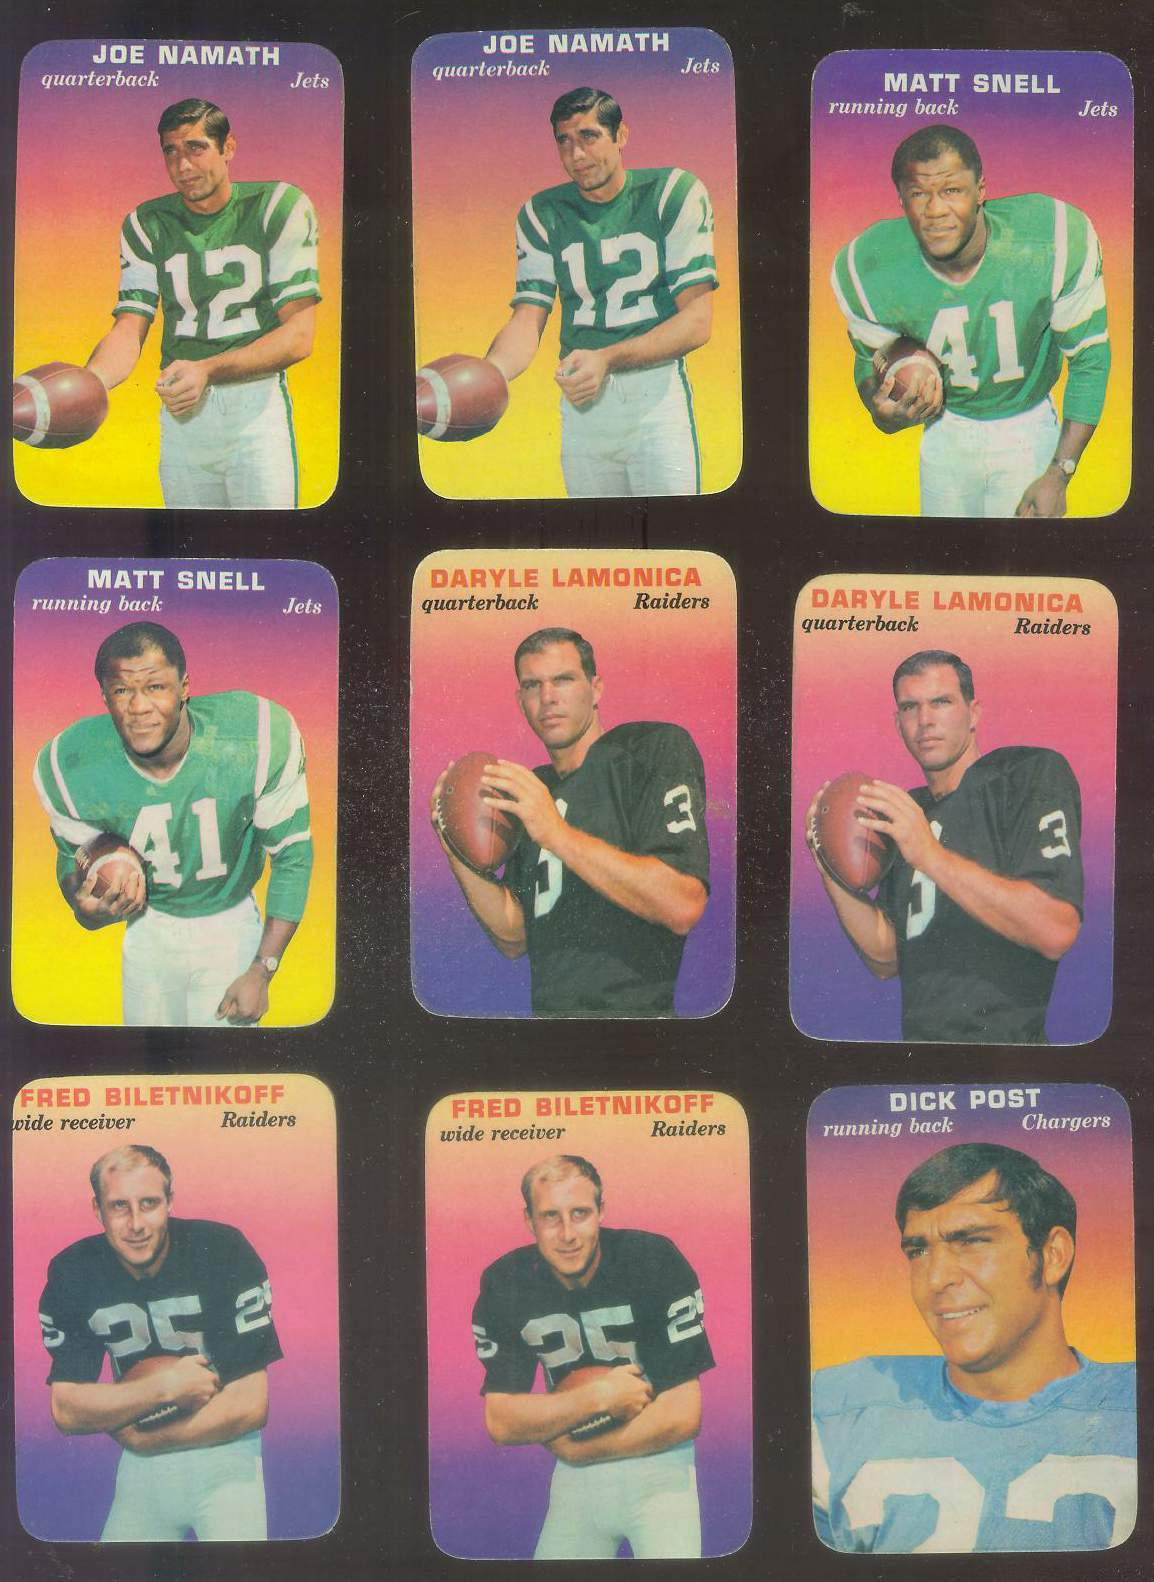 1970 Topps Glossy FB Inserts #29 Joe Namath (Jets) Football cards value